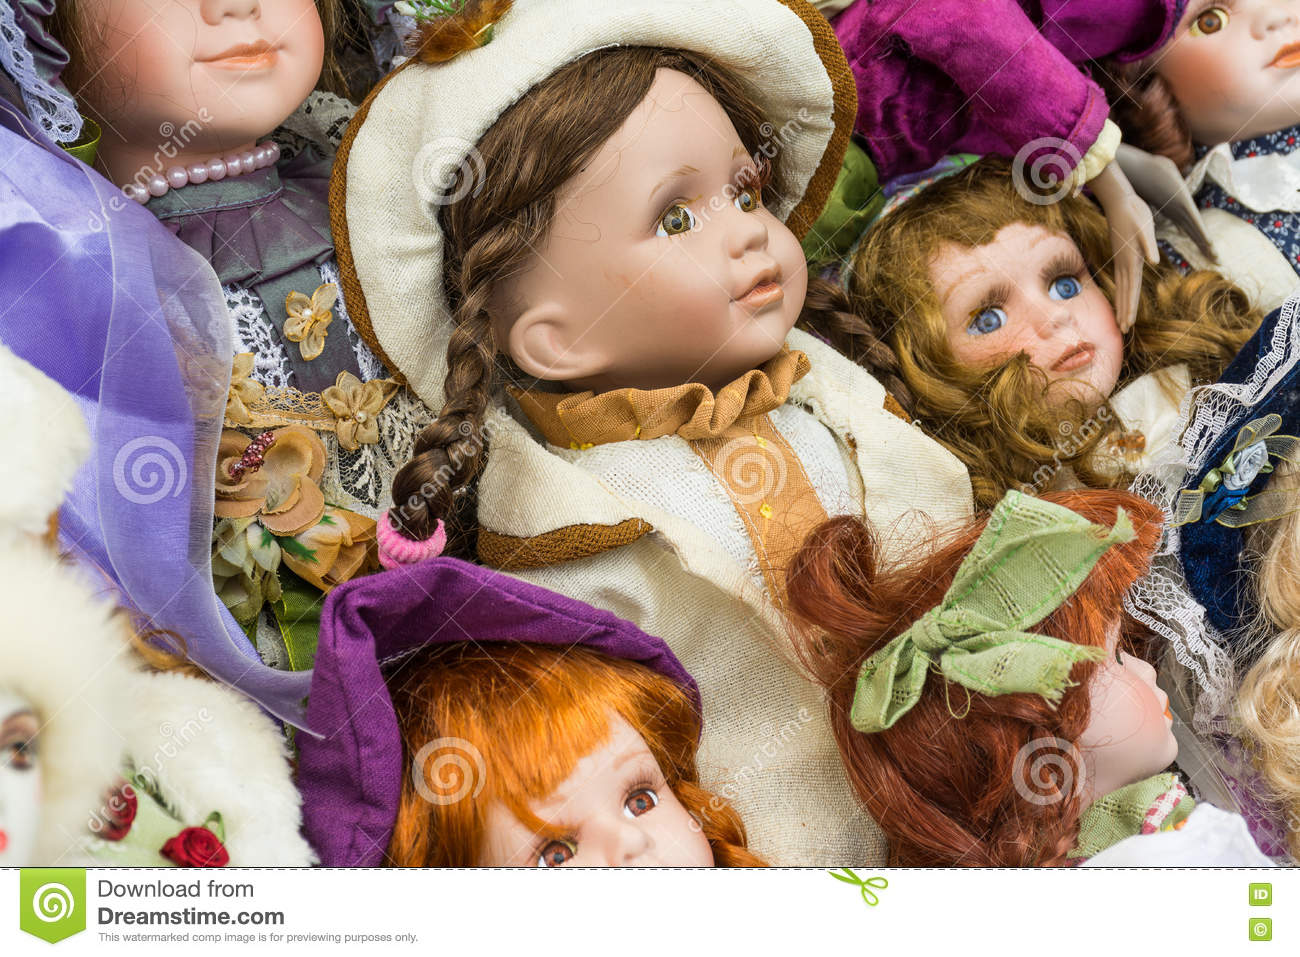 Sale of old dolls at a flea market